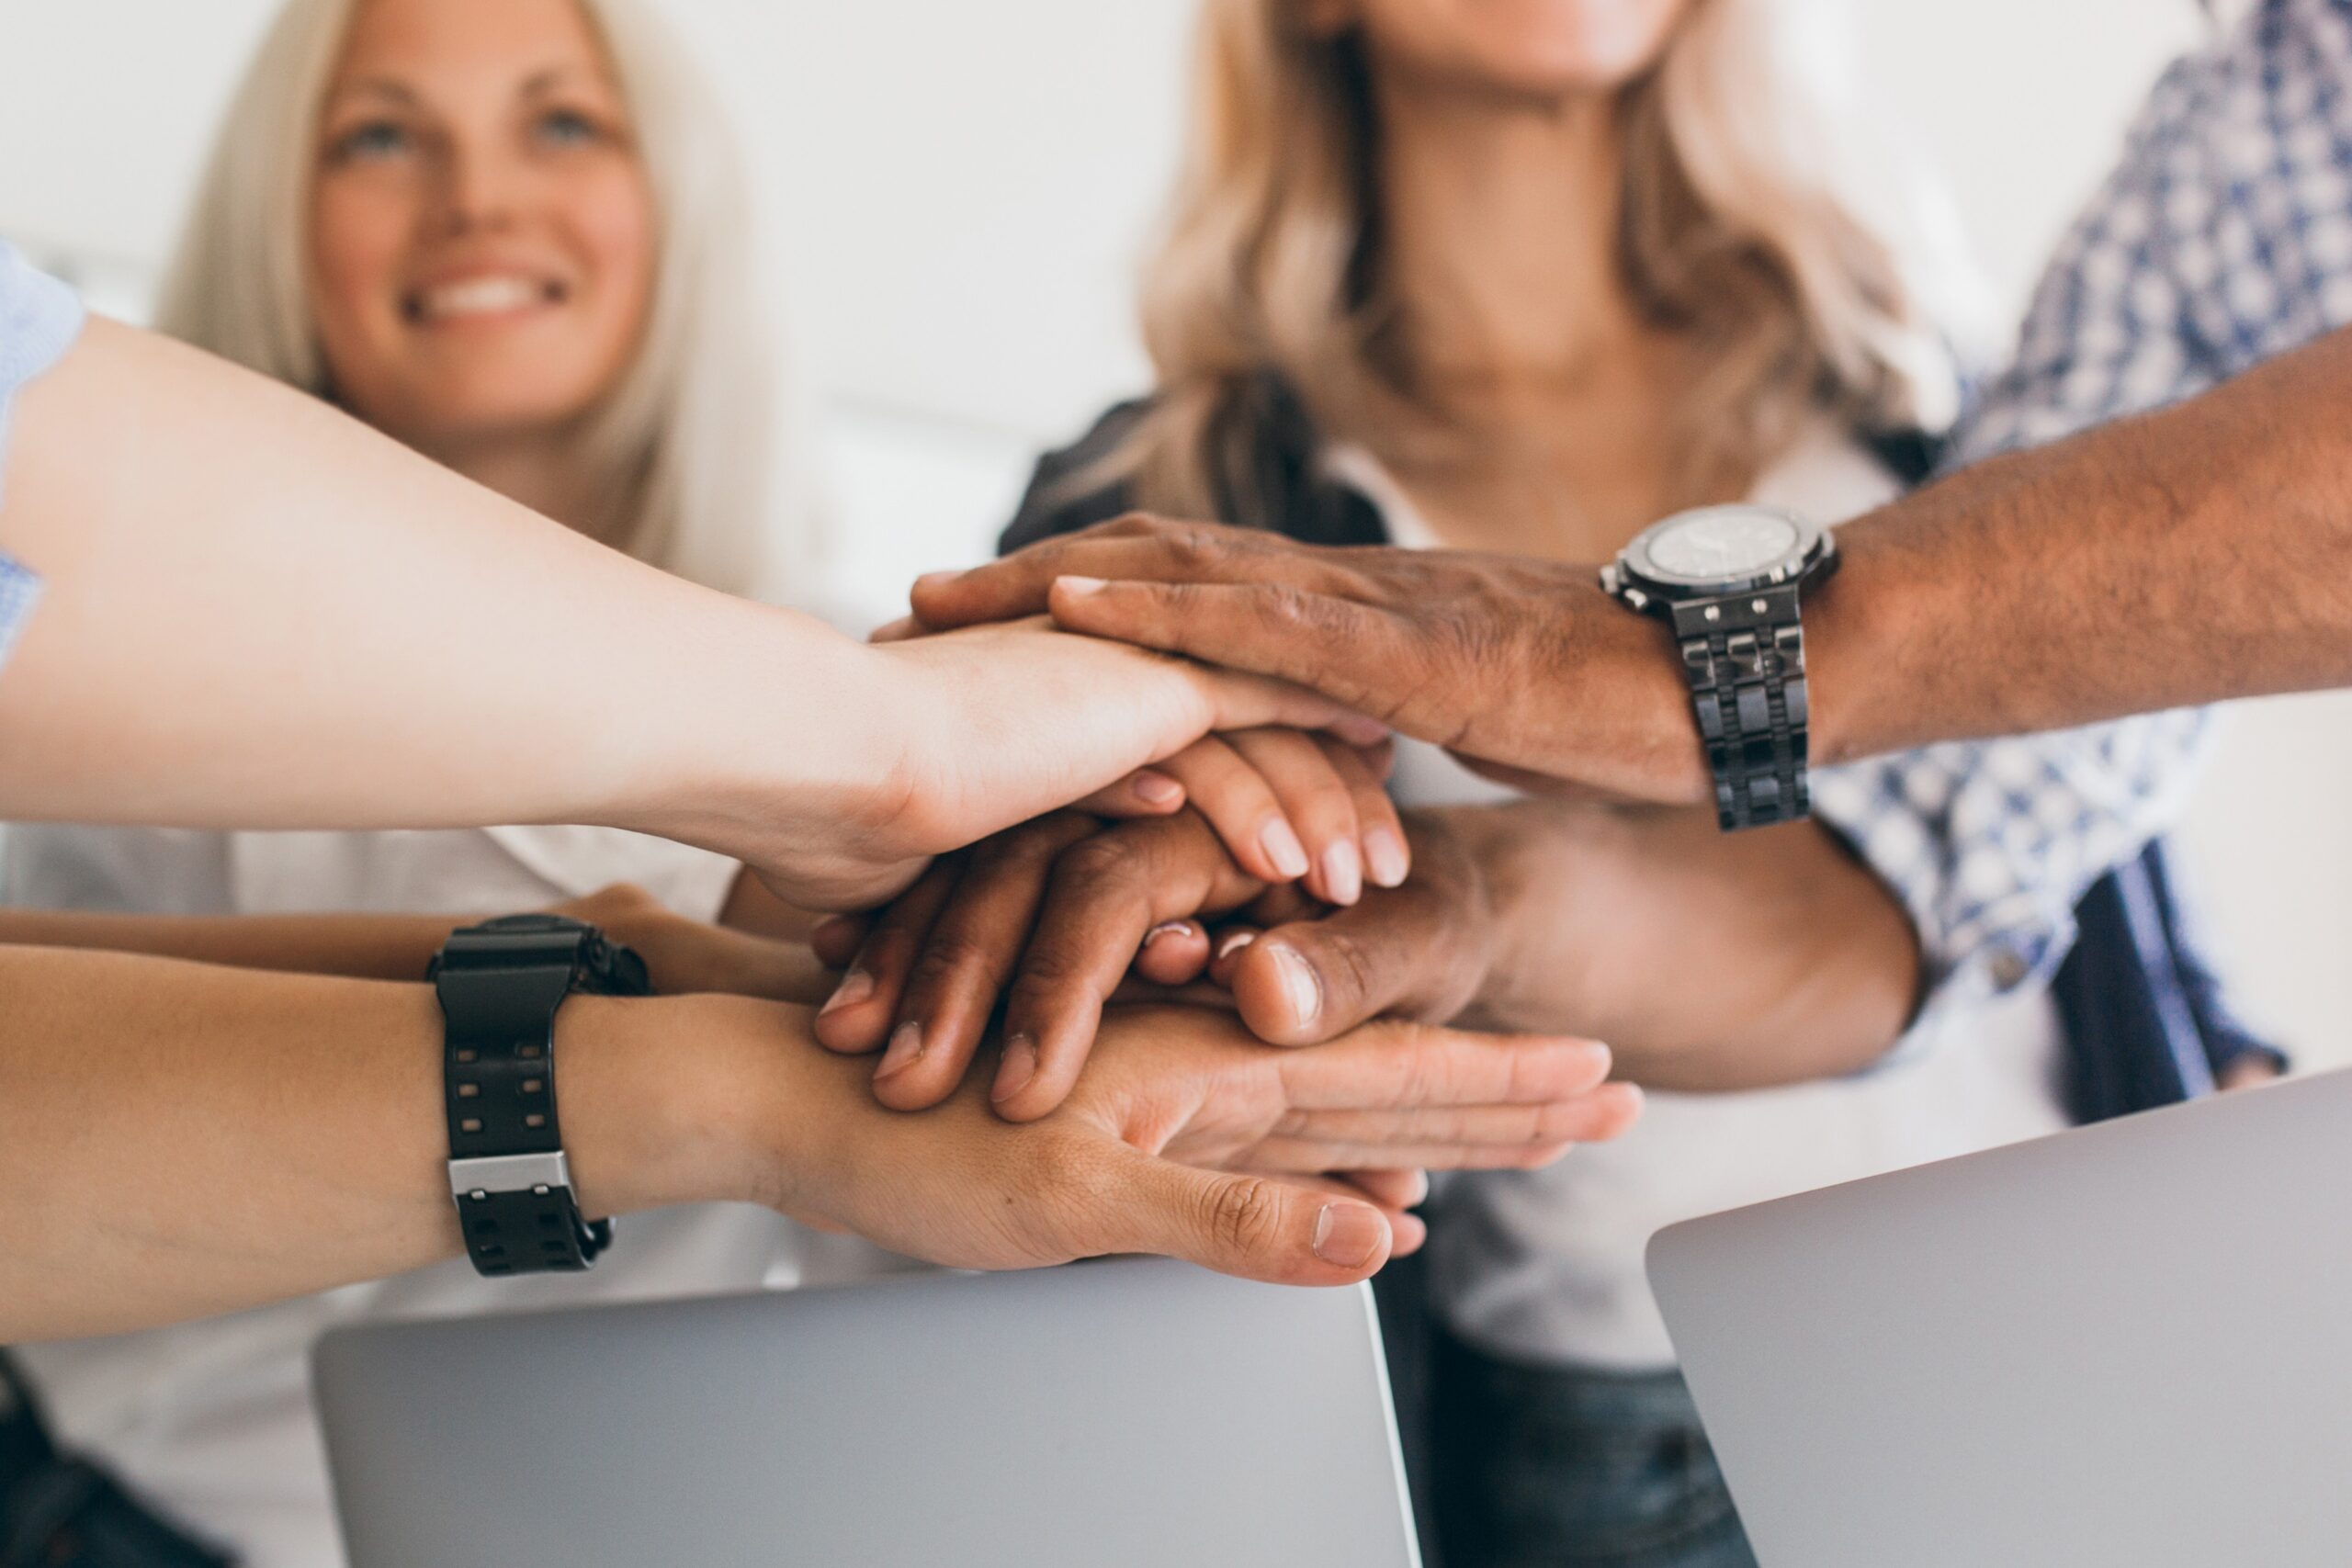 blonde-female-office-worker-looking-up-with-smile-while-holding-hands-with-colleagues-indoor-portrait-friends-ready-start-joint-work-project – Edited